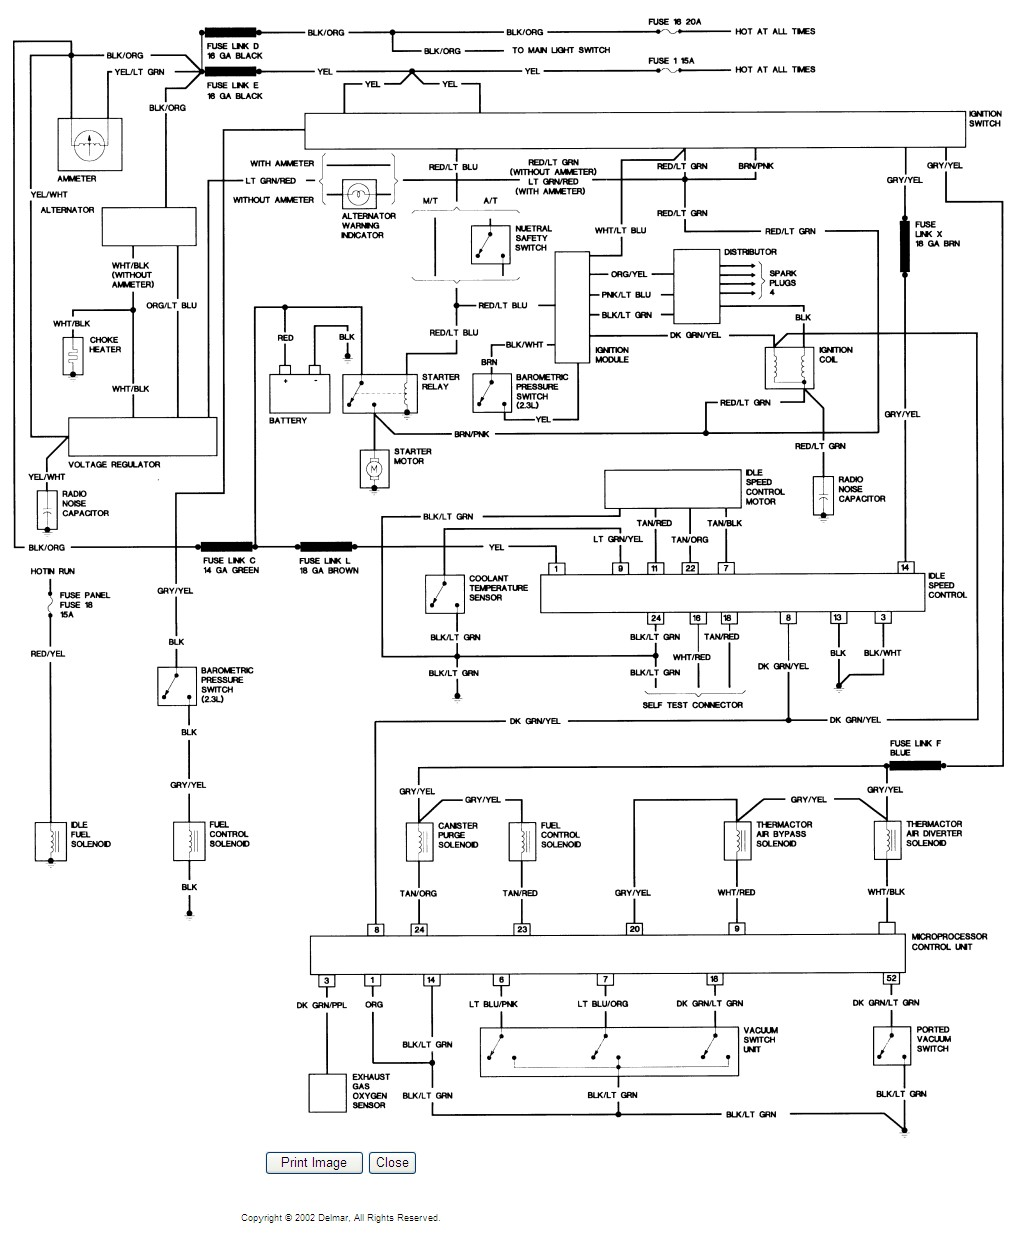 I Need The Electrical Wiring Diagram For A 1985 Ford